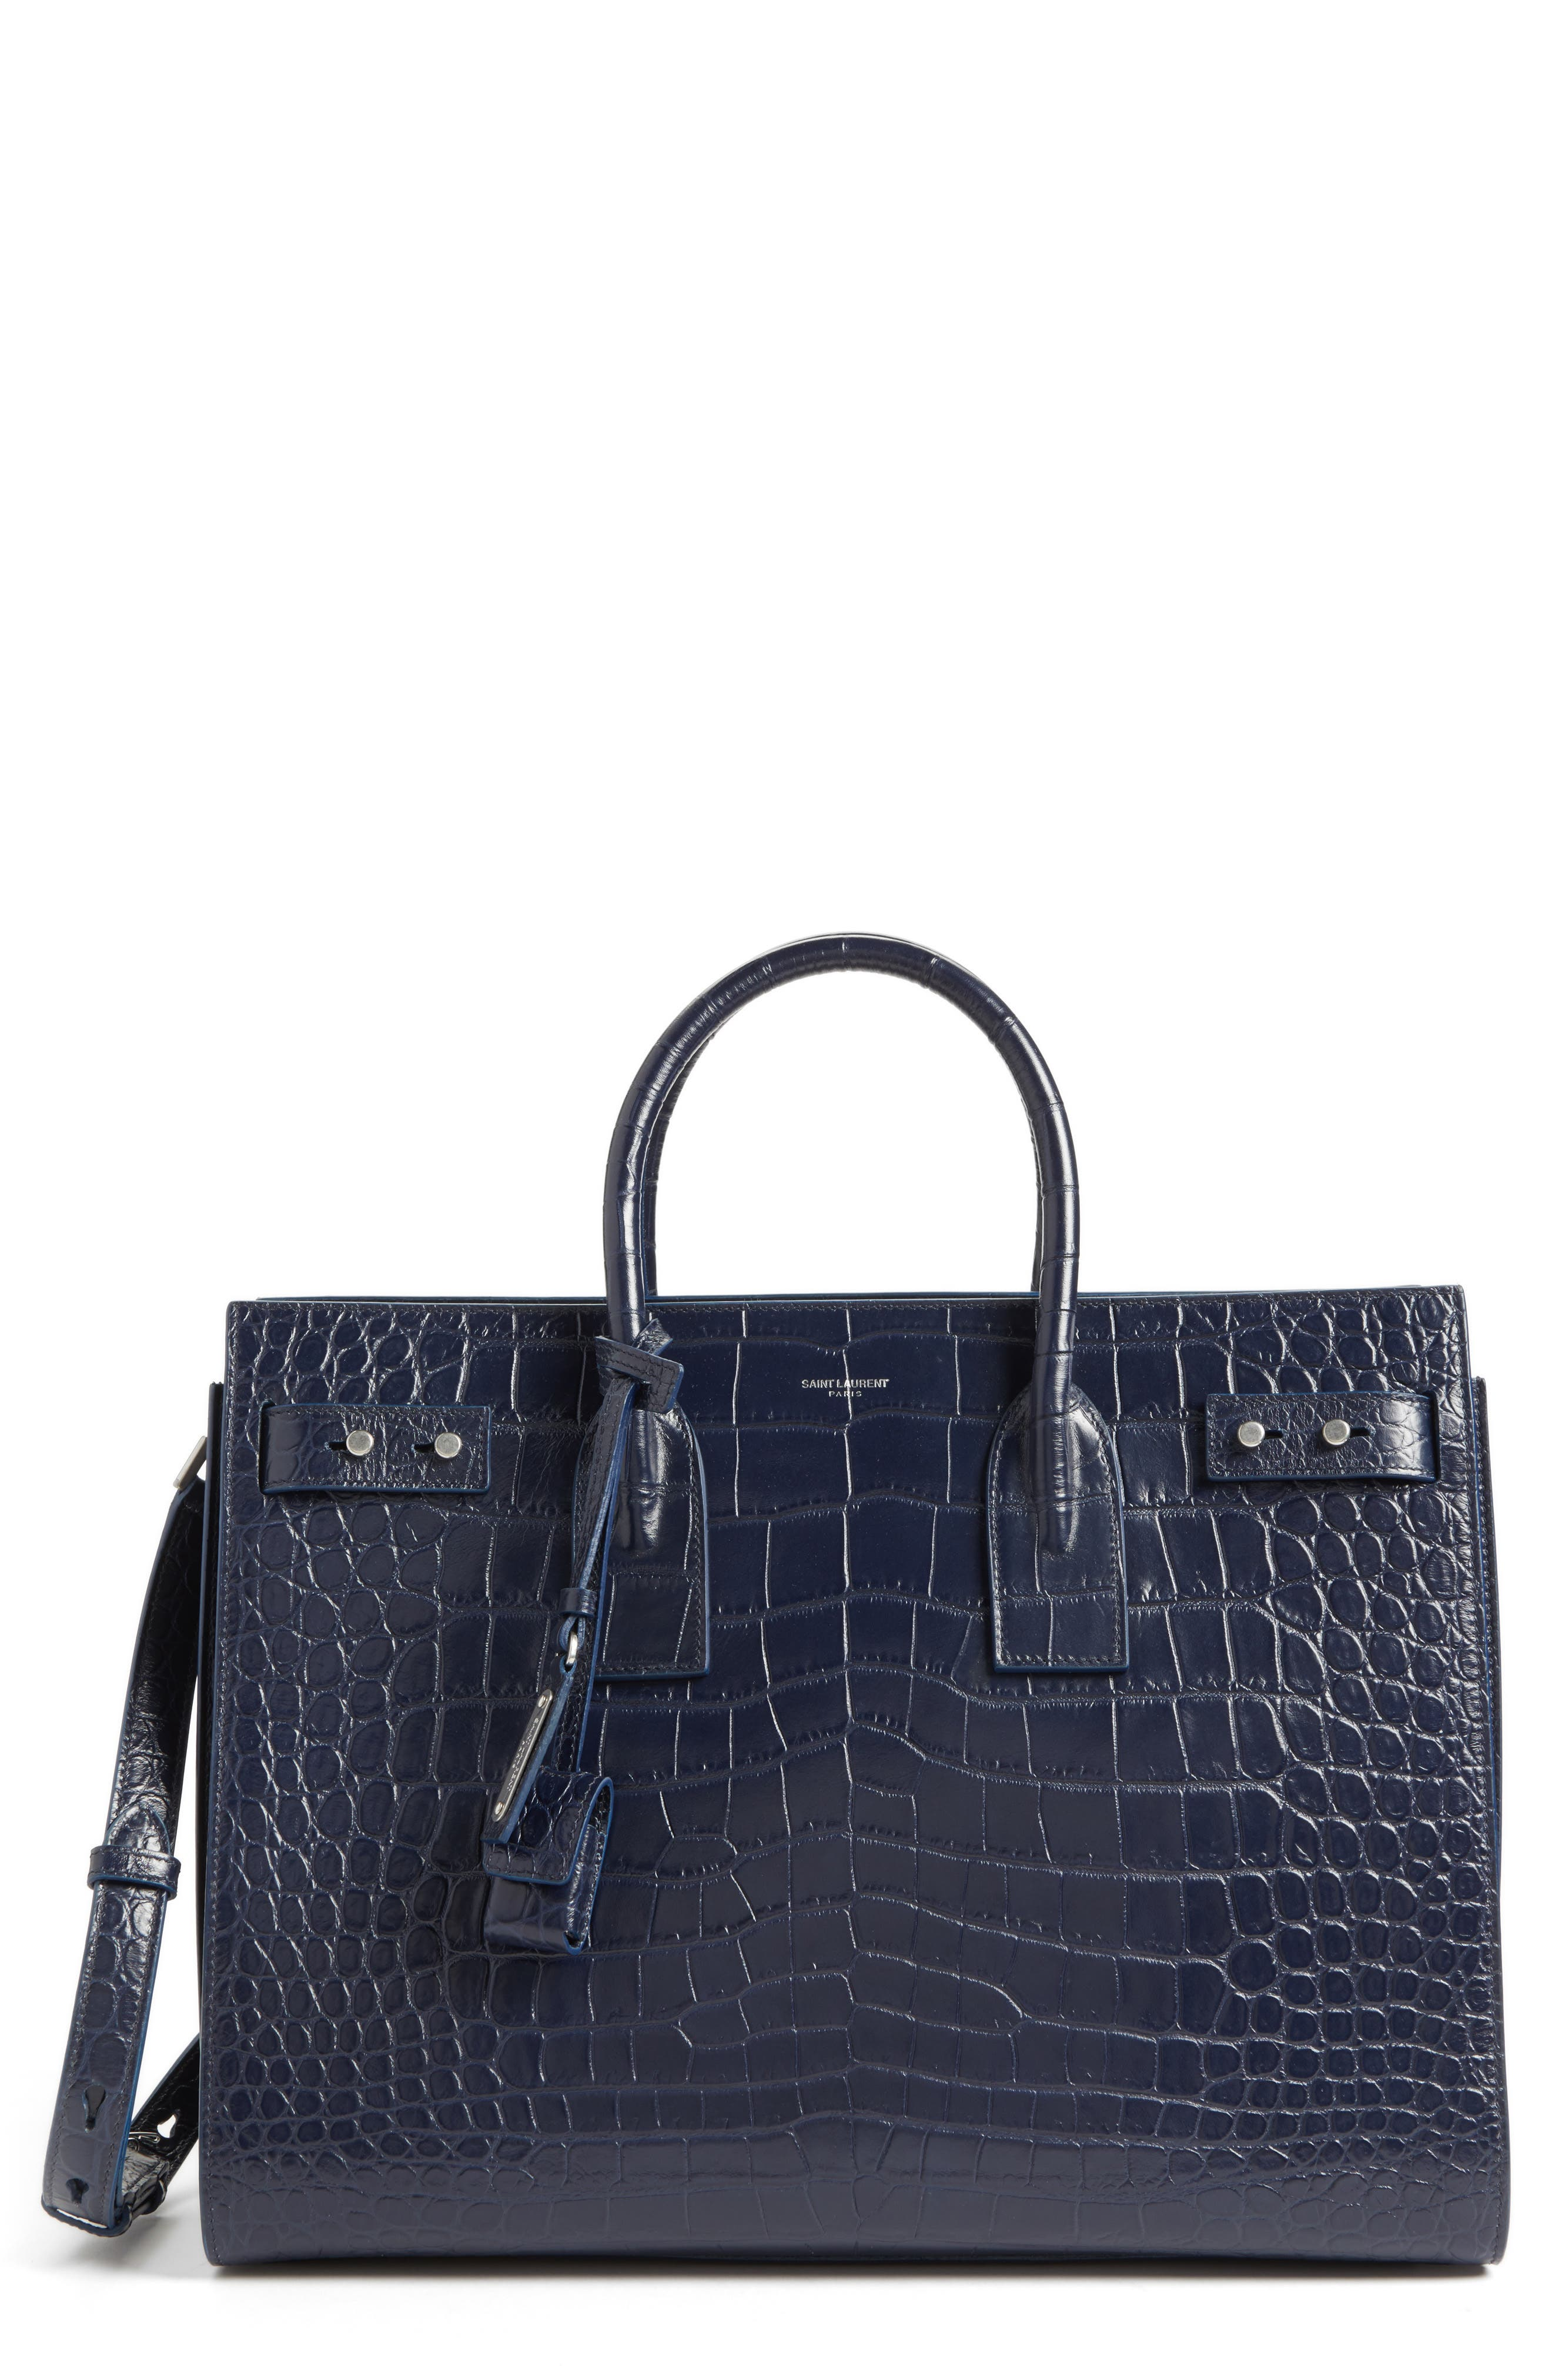 Saint Laurent Small Sac de Jour Croc Embossed Leather Tote